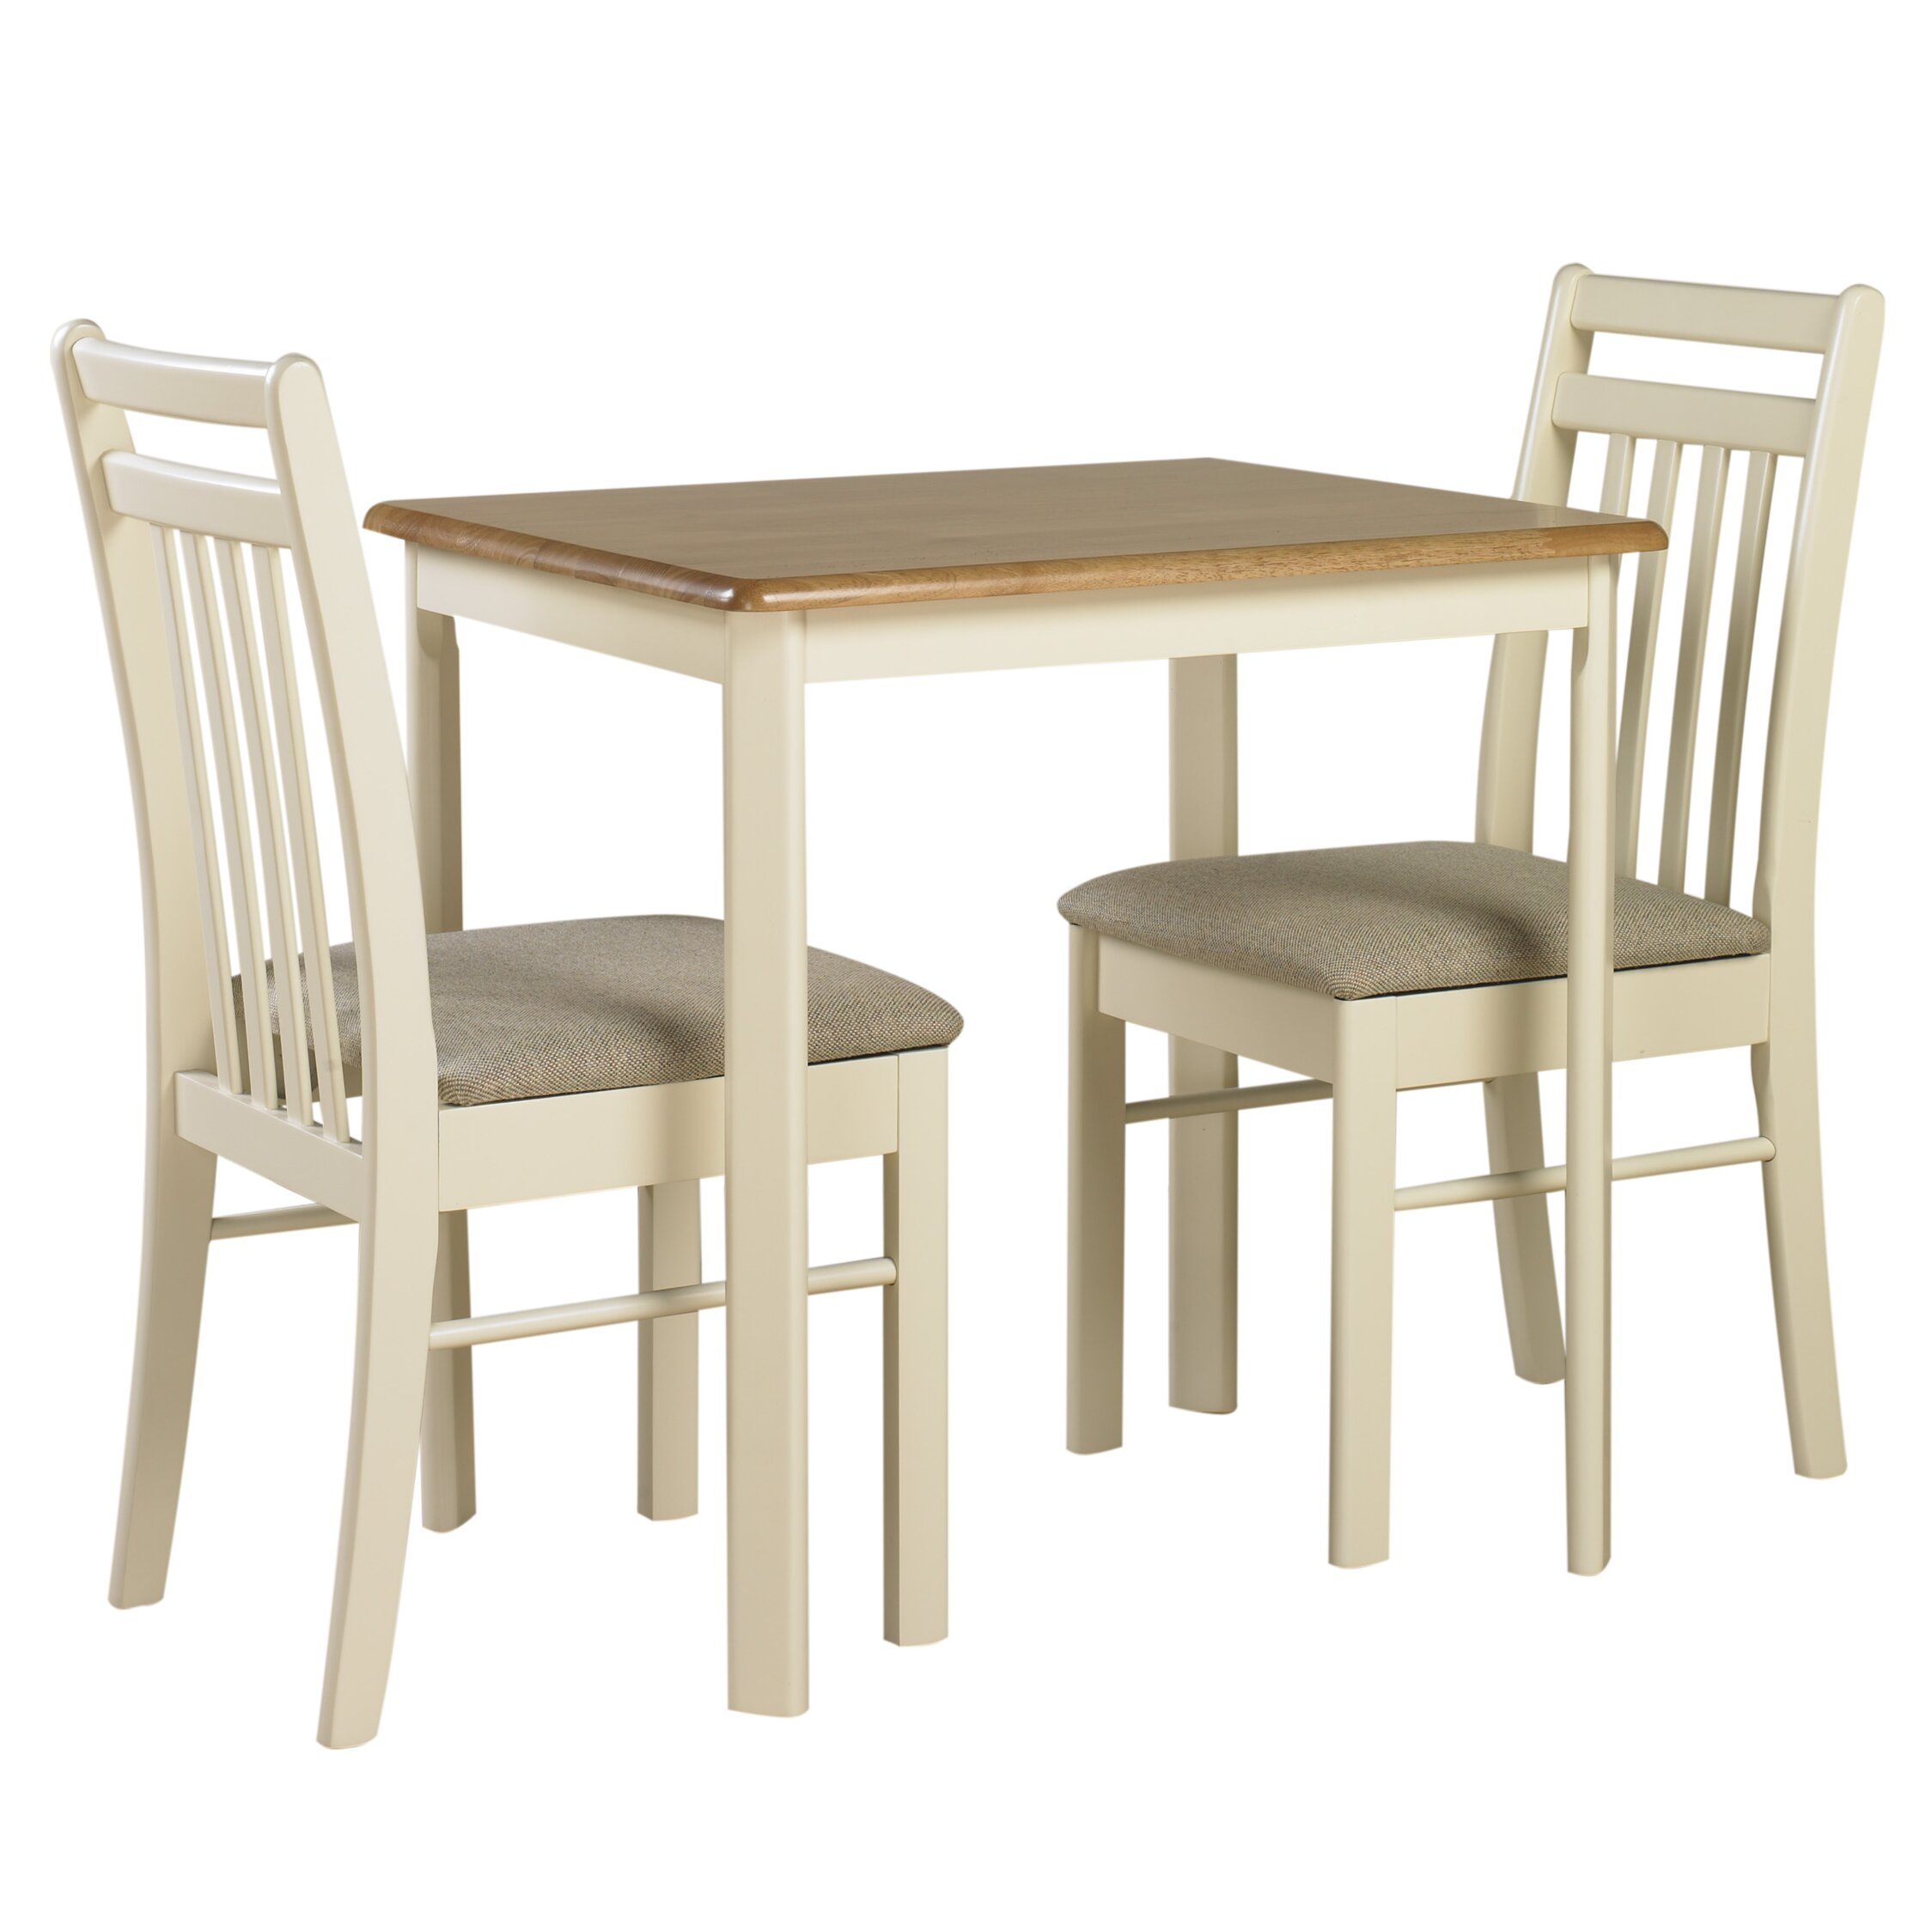 Origin Red Ascot Dining Table And 2 Chairs